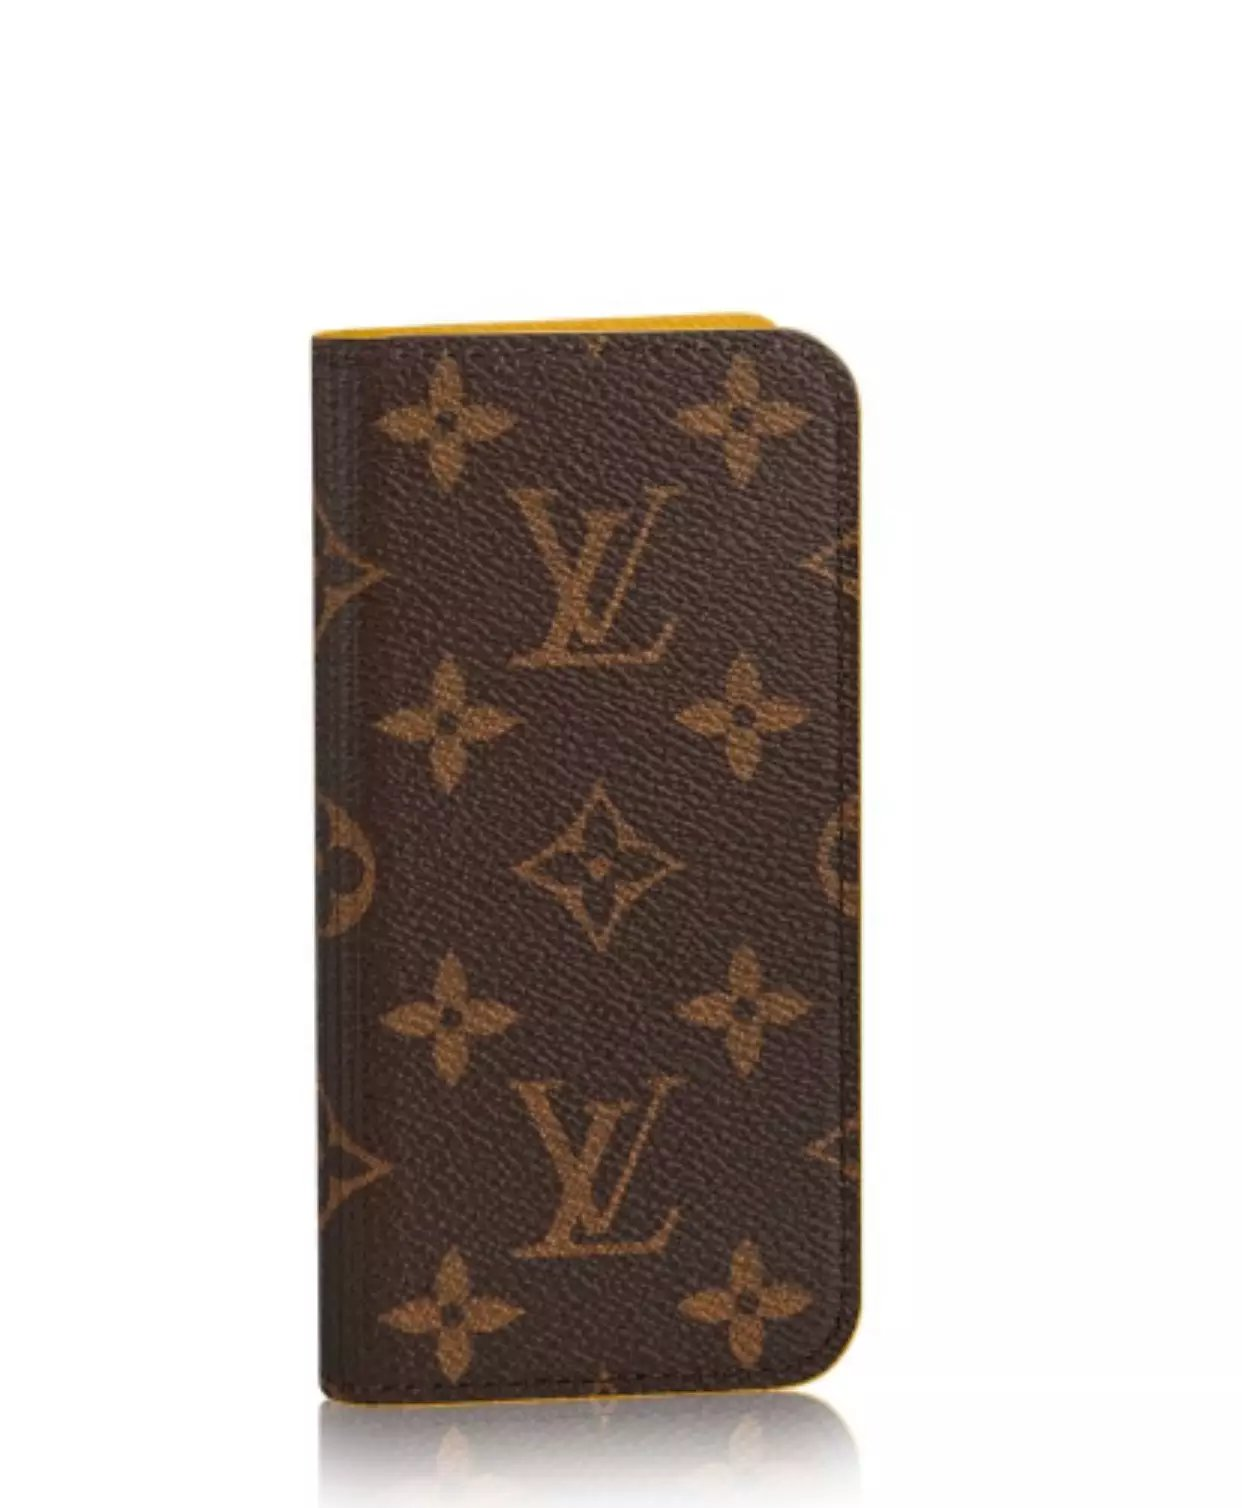 günstige iphone hüllen iphone lederhülle Louis Vuitton iphone 8 Plus hüllen handyhülle samsung gala8 Plusy s8 Plus 8 Pluslbst gestalten original apple ca8 Plus iphone 8 Plus handy cover 8 Pluslbst designen individuelle smartphone hülle wann kommt das iphone 8 Plus raus in deutschland handyhüllen 8 Pluslber gestalten s8 Plus